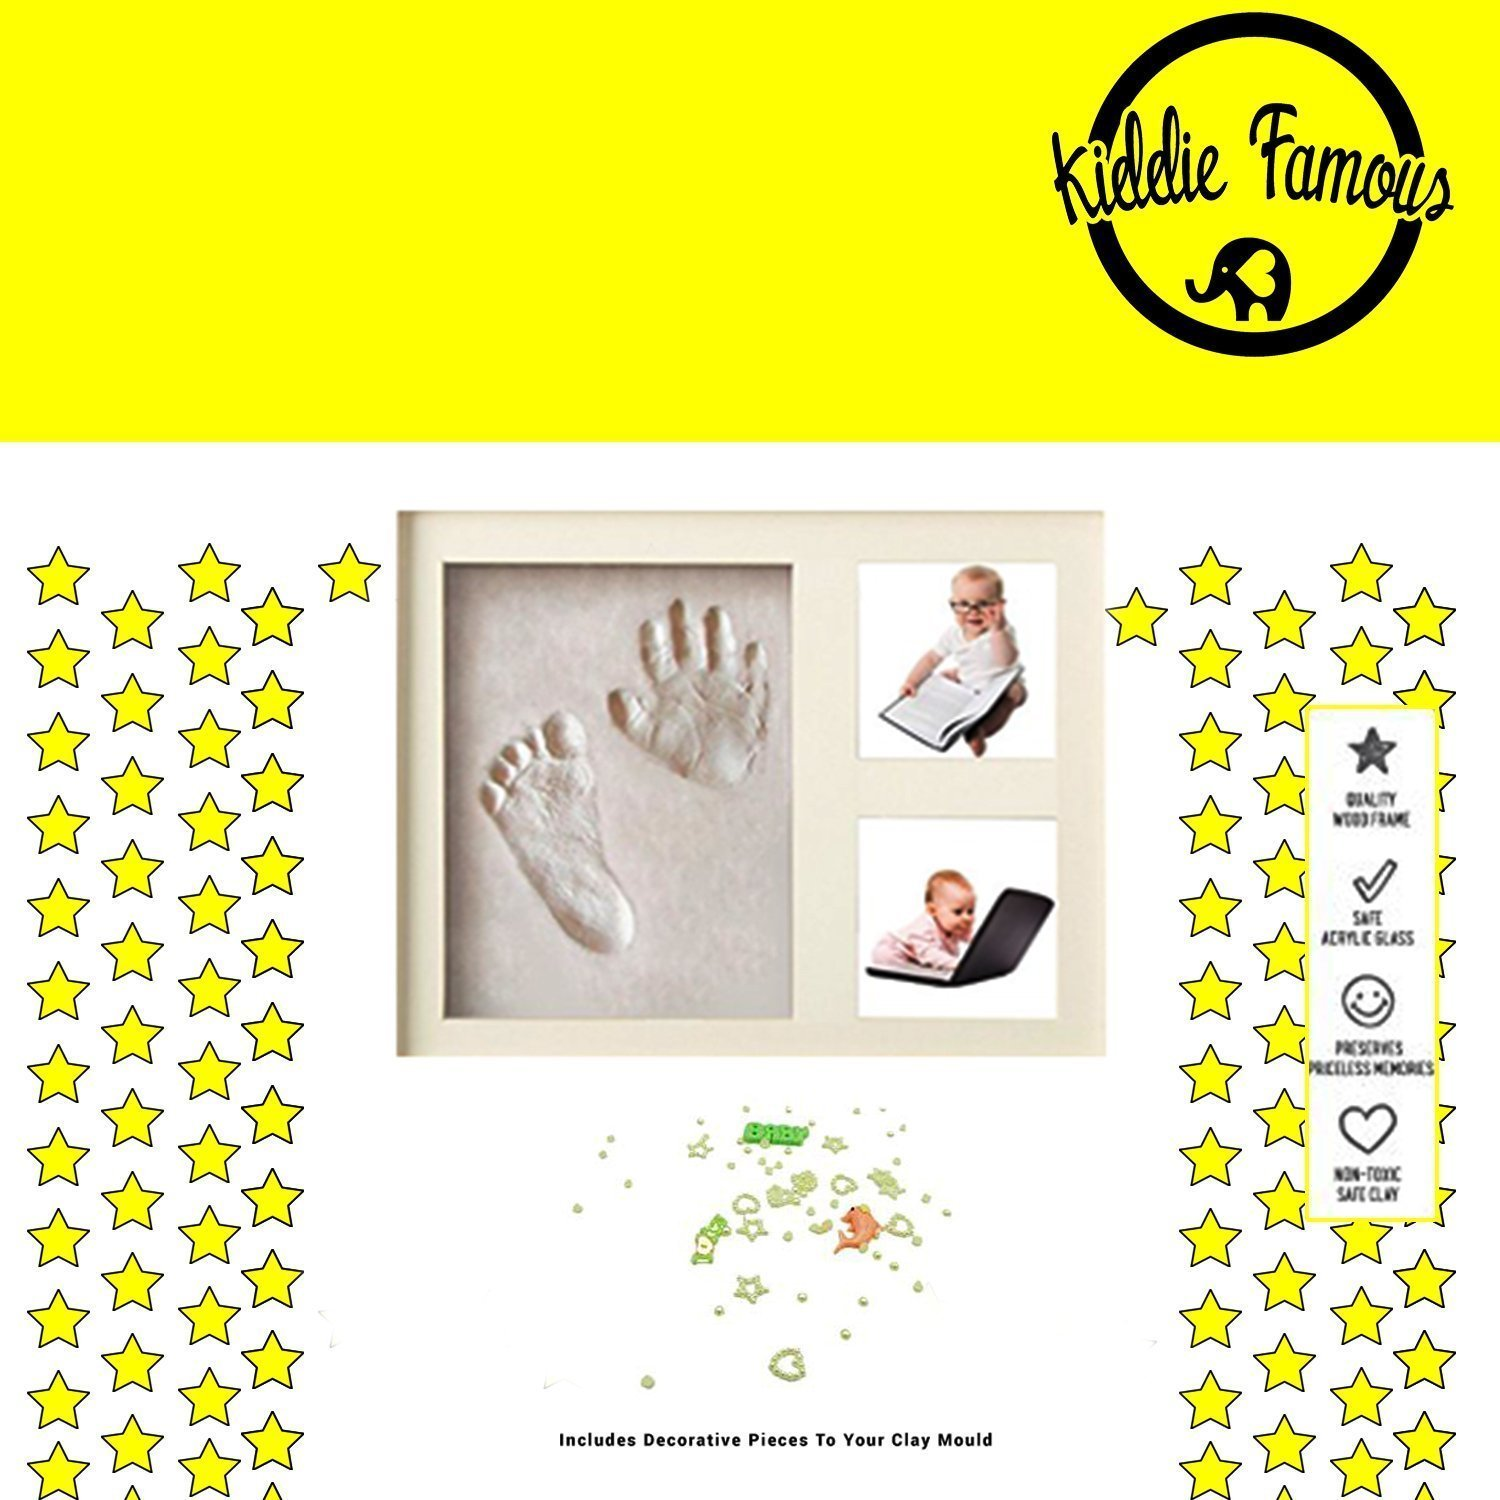 Baby Hand and Footprint Picture Frame (White) - Wood Frame Keepsake Kit with Self-Drying Decorative Clay for Baby Handprint & Footprint - Memorable Boy and Girl Gift for Mother's, Father's